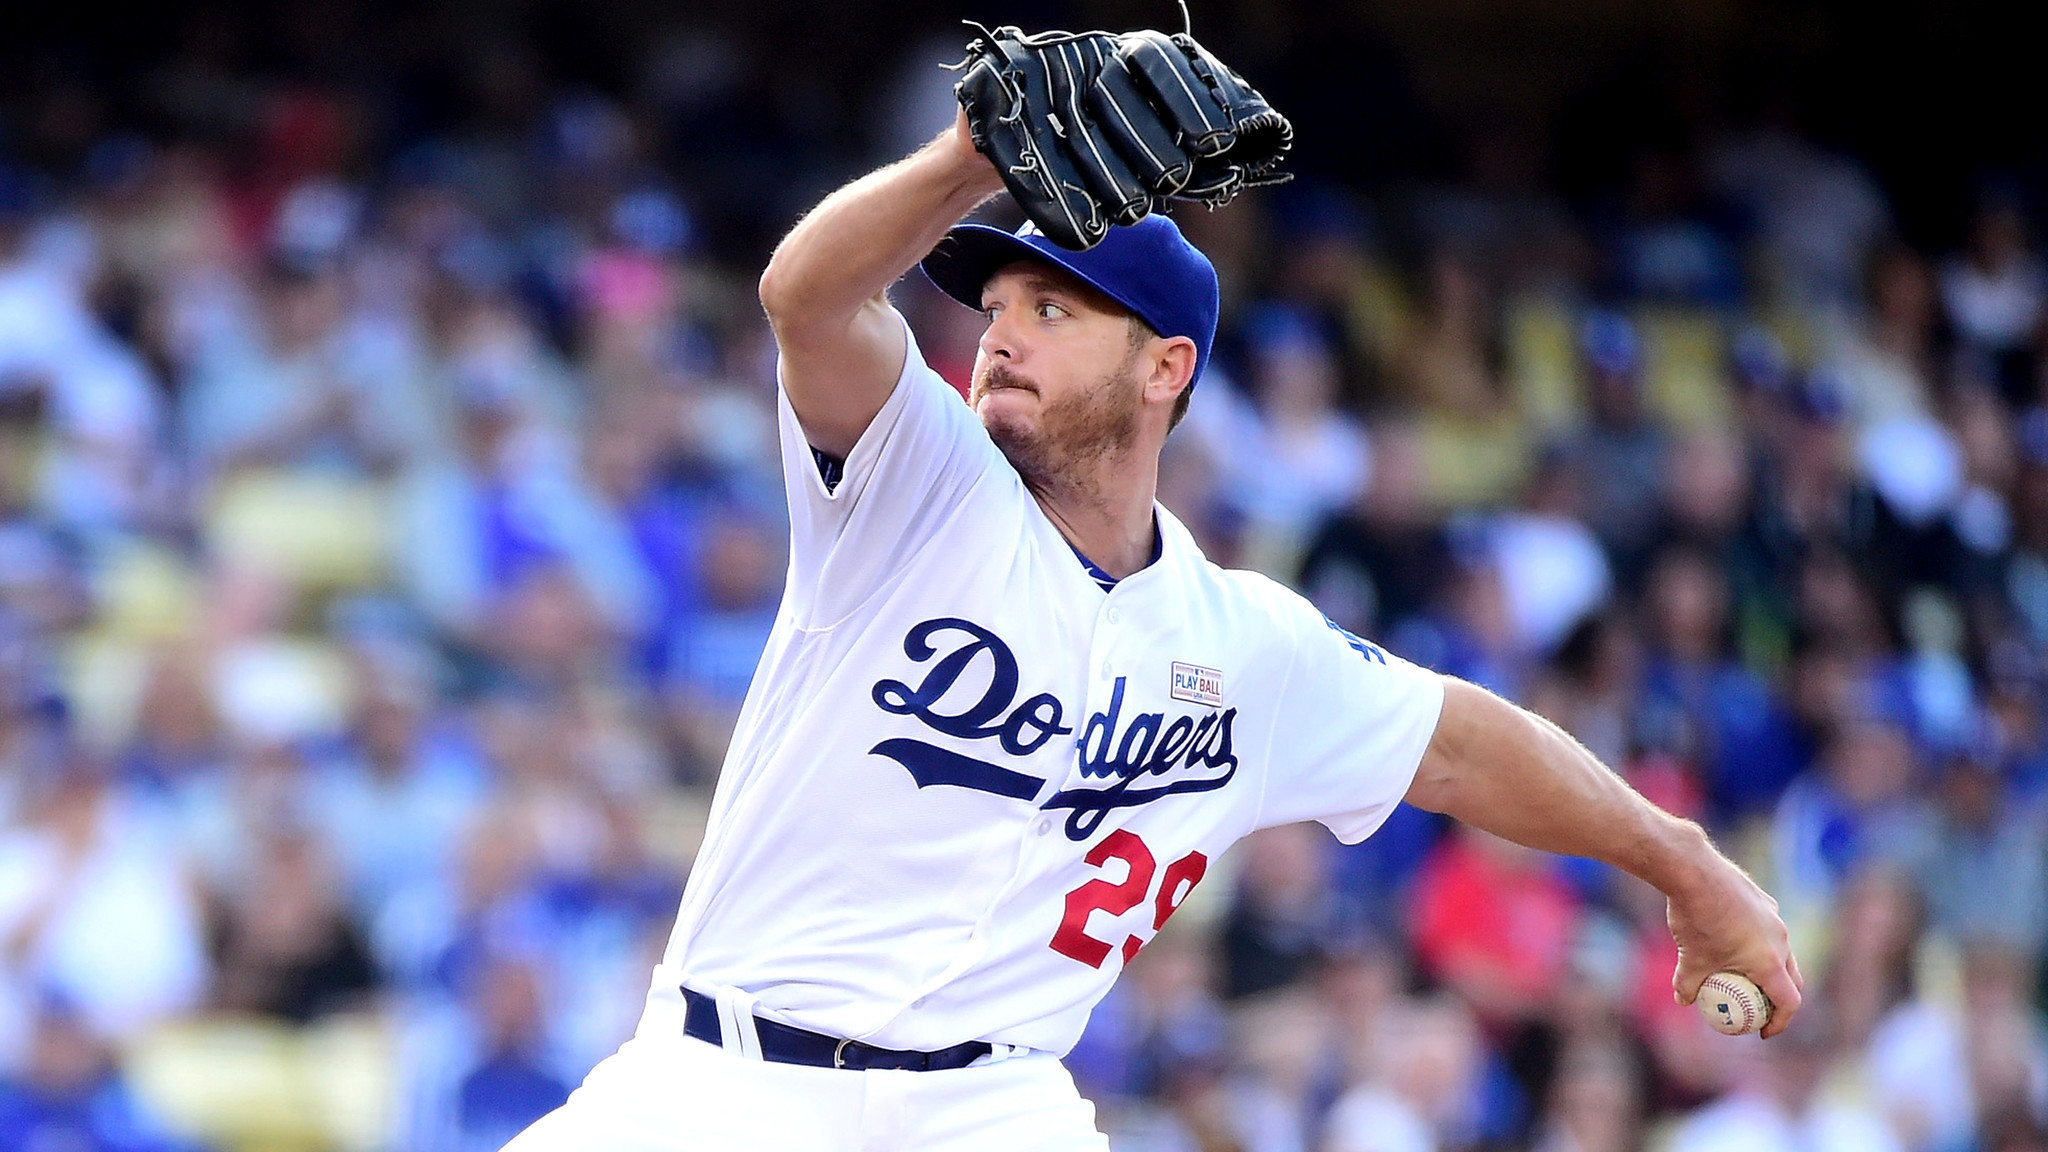 Scott Kazmir plays cards right and Dodgers get 5-3 victory - LA Times